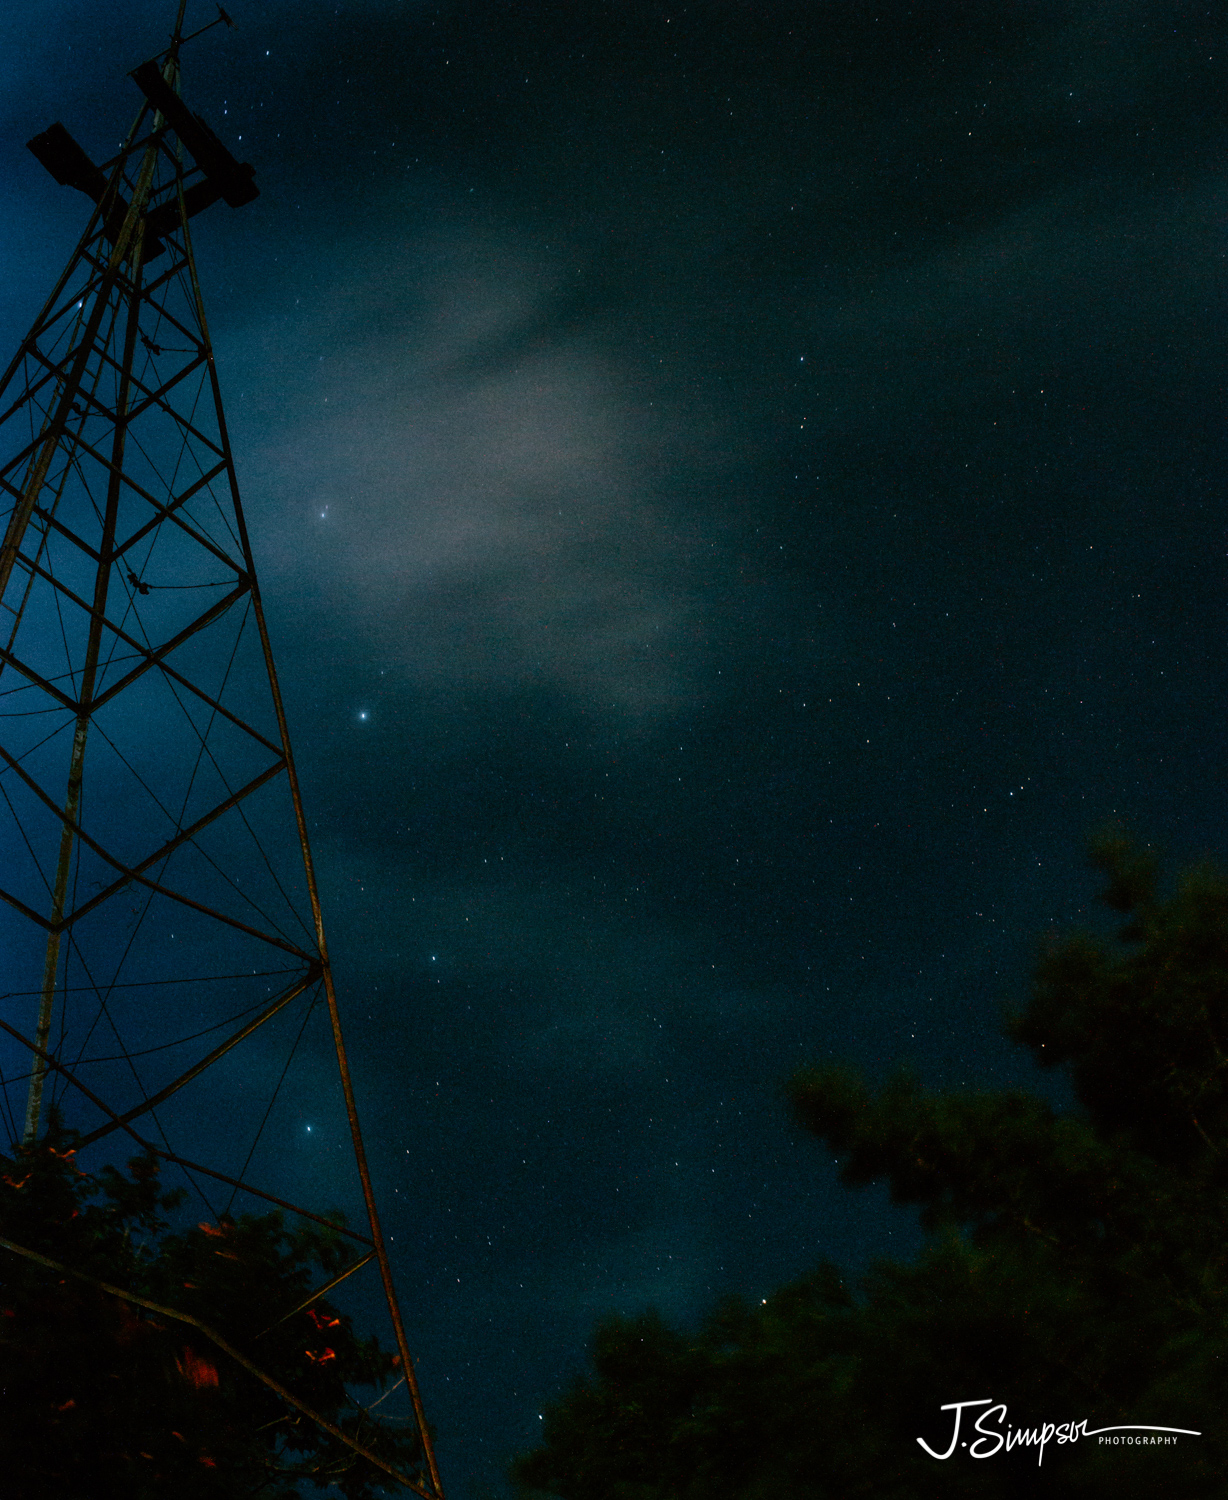 Night-Photography-Justice-Simpson-003.jpg